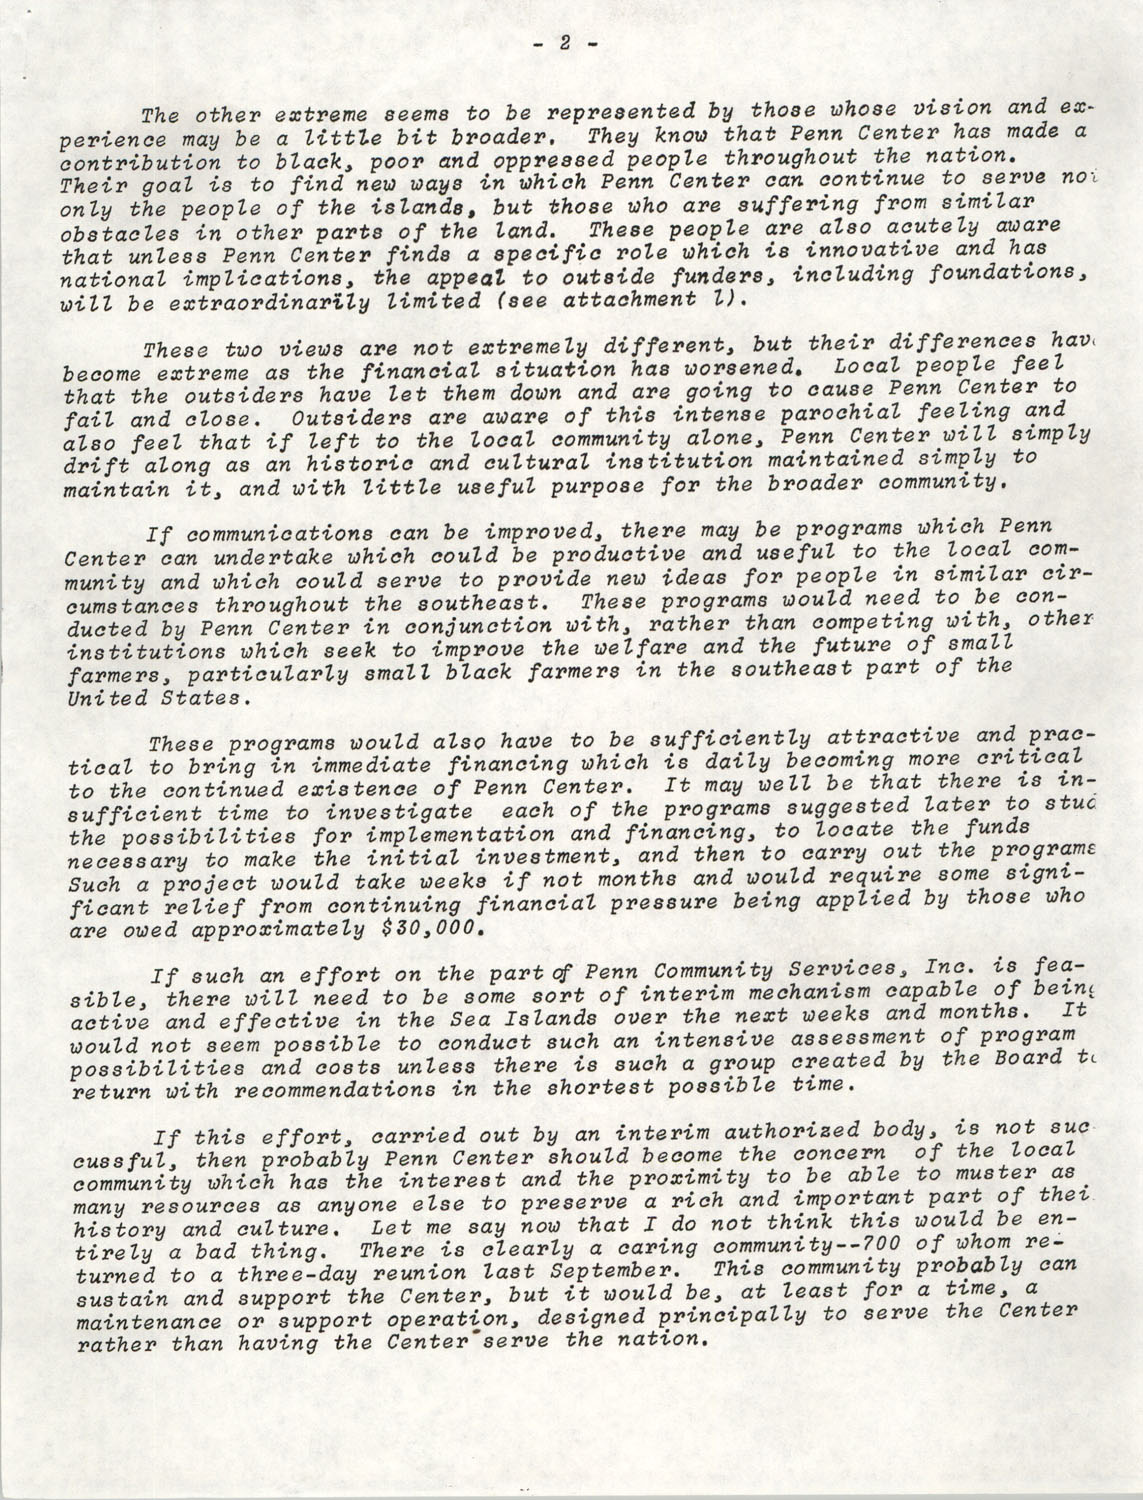 Planning and Management Assistance Project Report, Penn Community Services, April 1978, Page 2